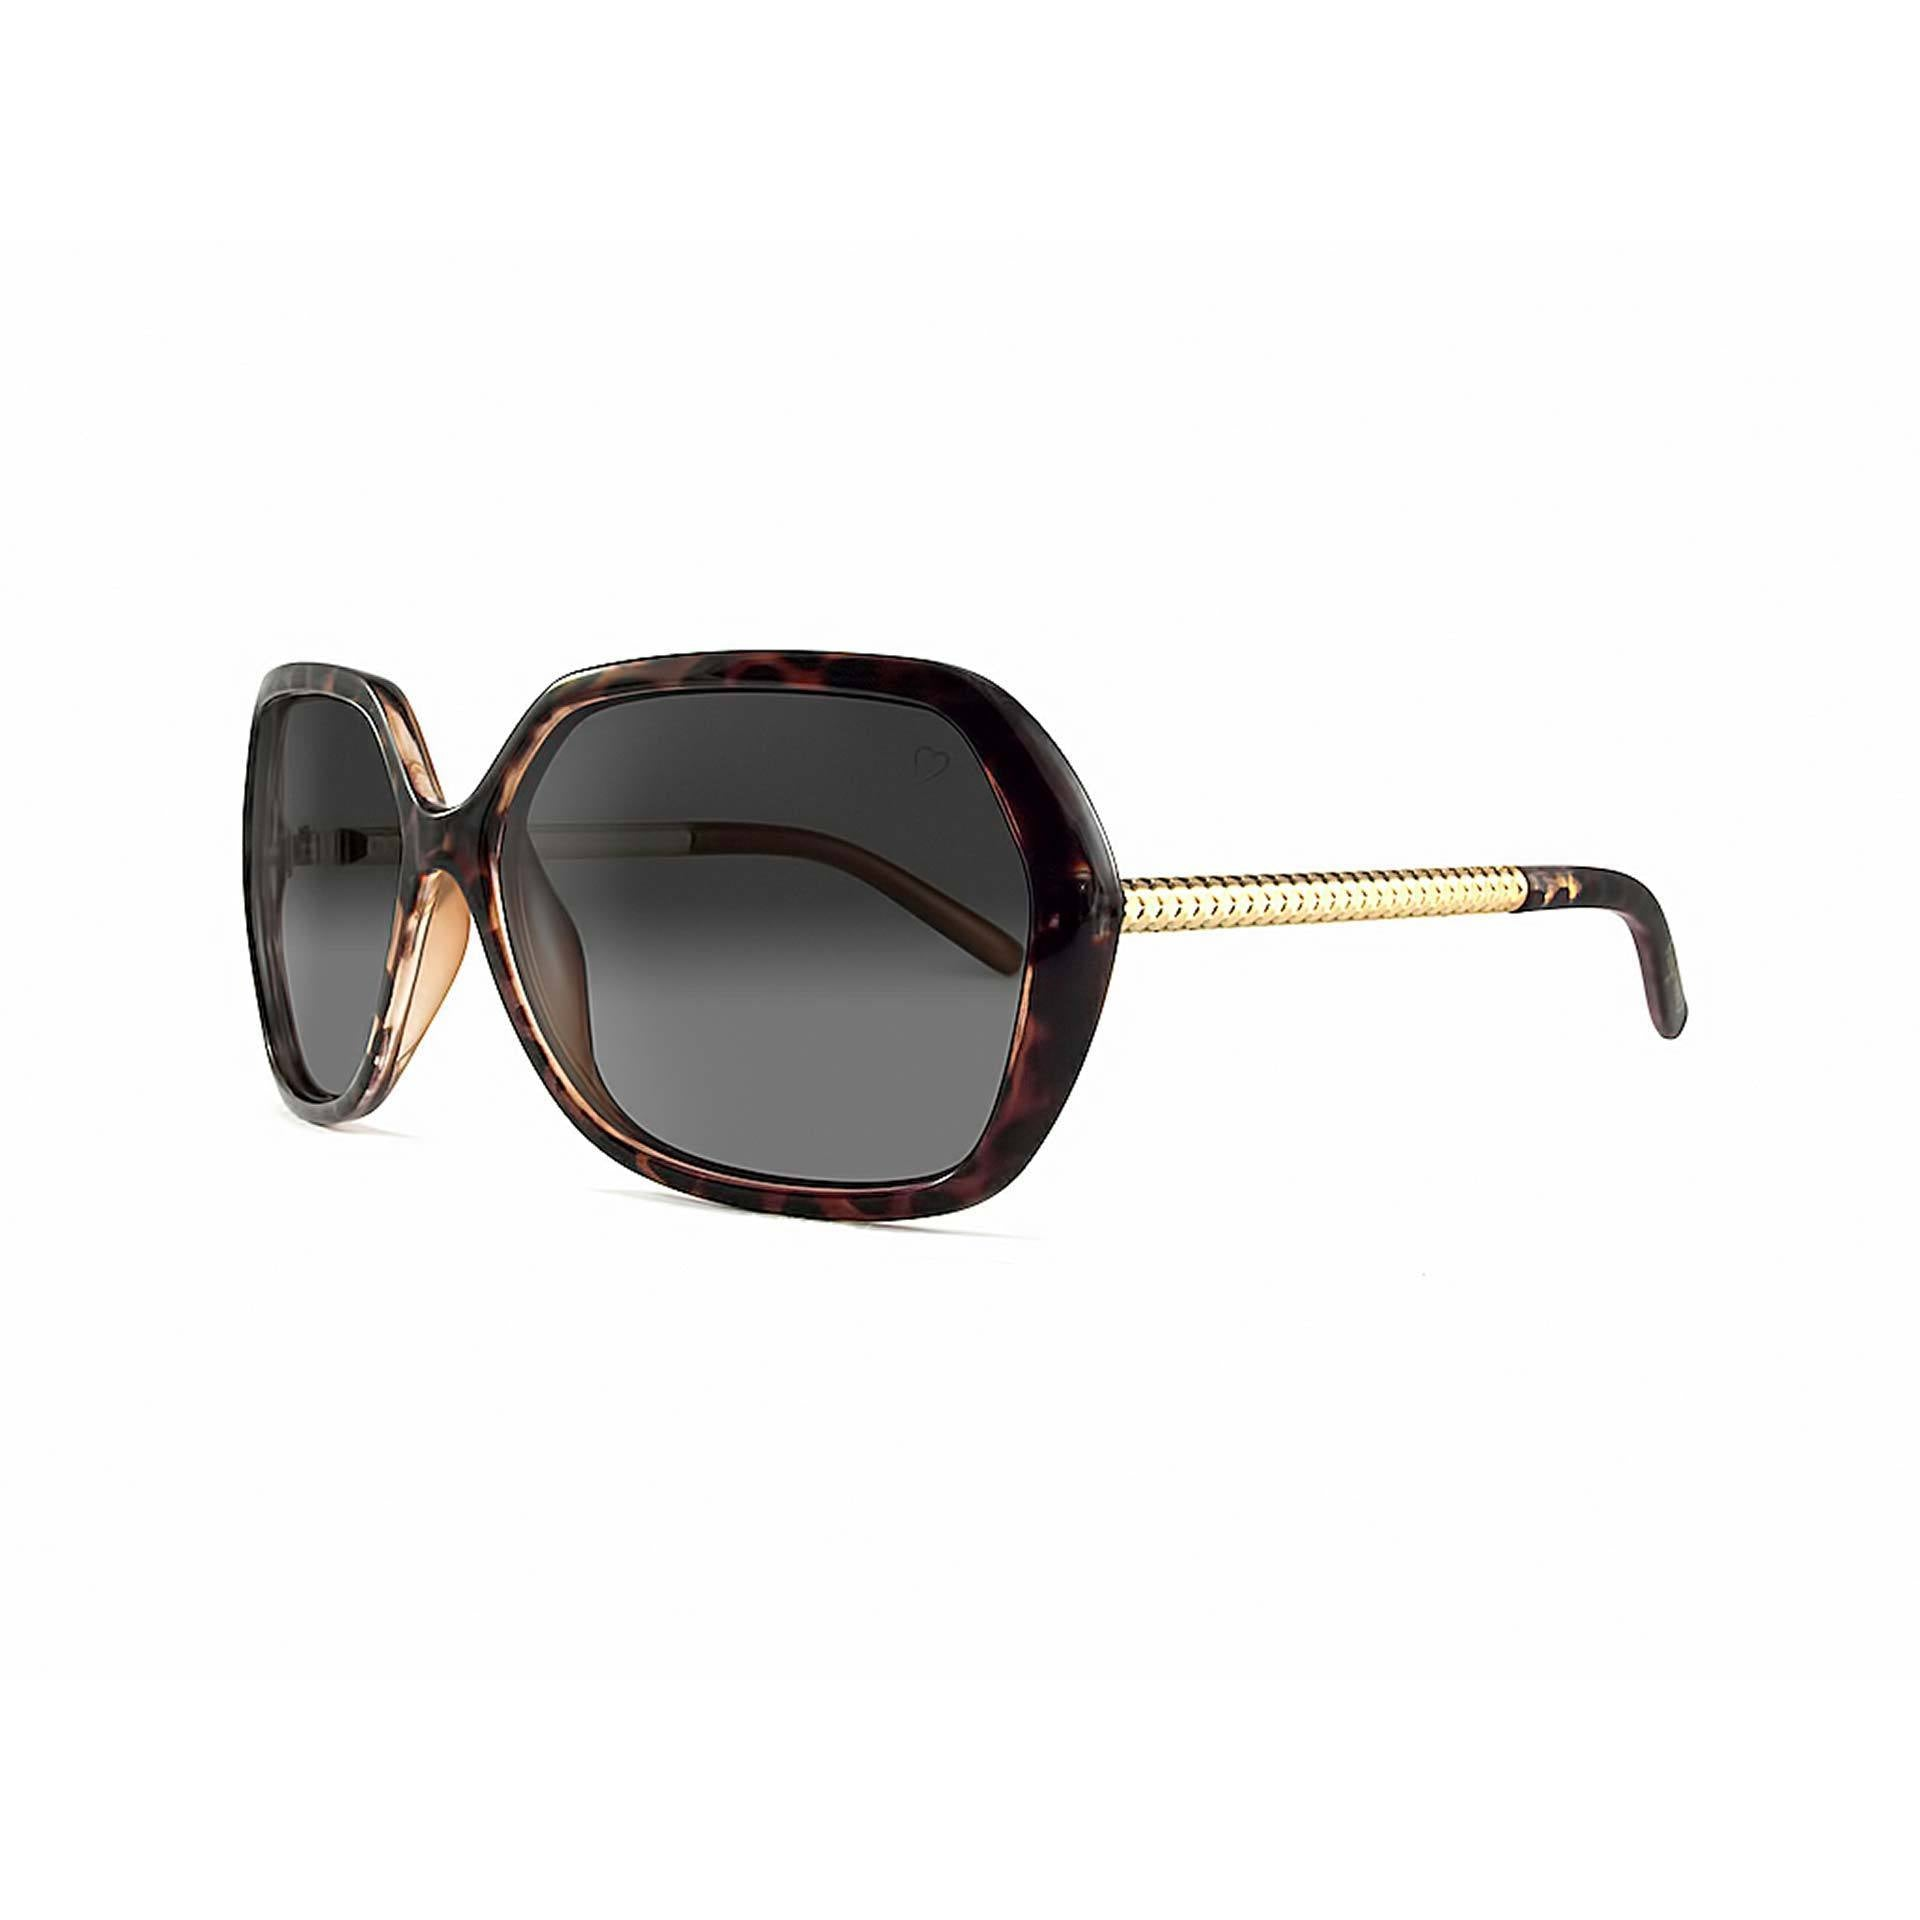 Ladies 'Paris' Oversized Sunglasses In Tortoiseshell